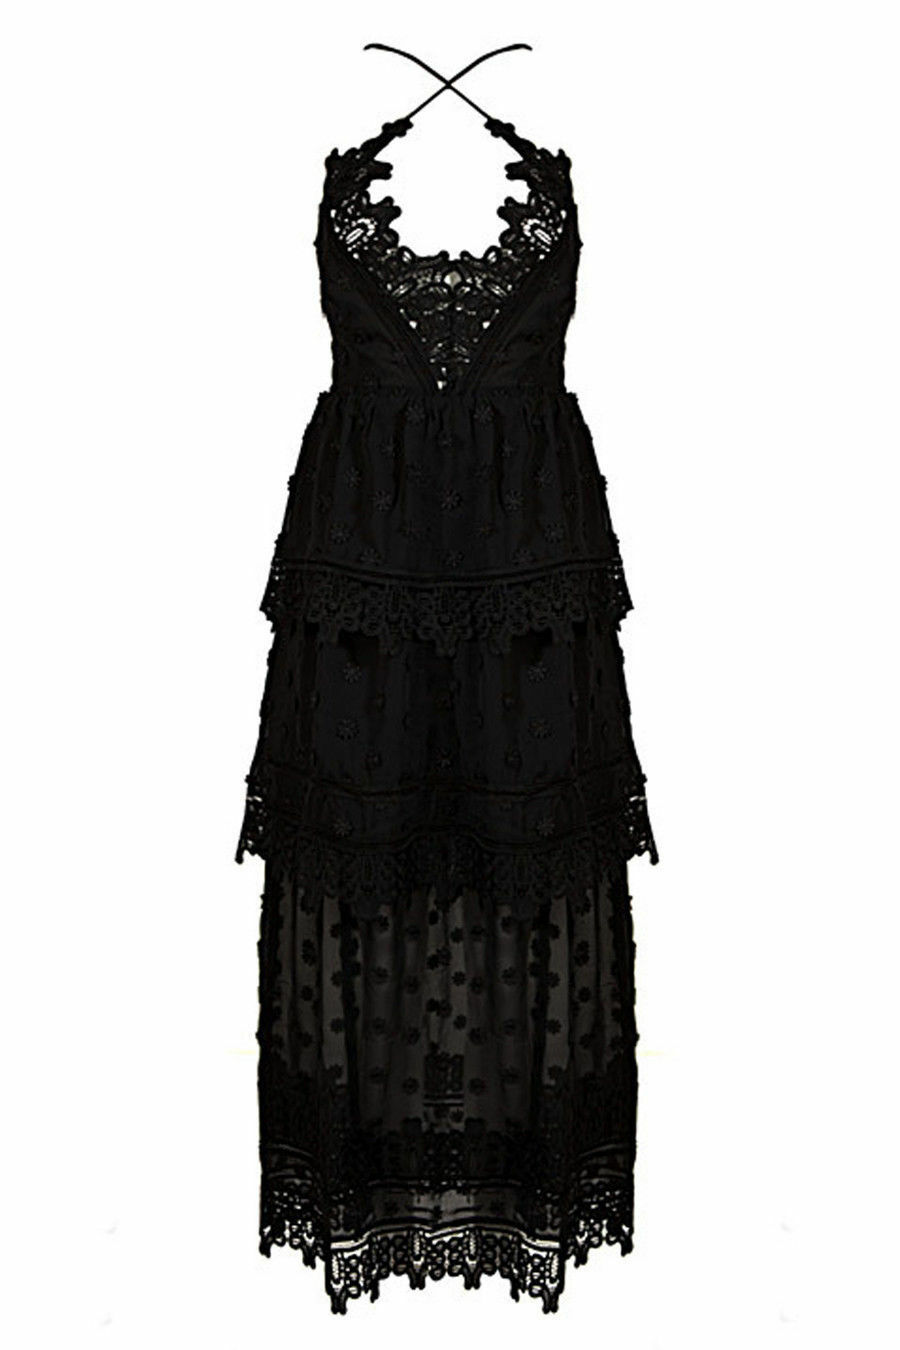 Honey Couture Black Lace Up Dress in Black